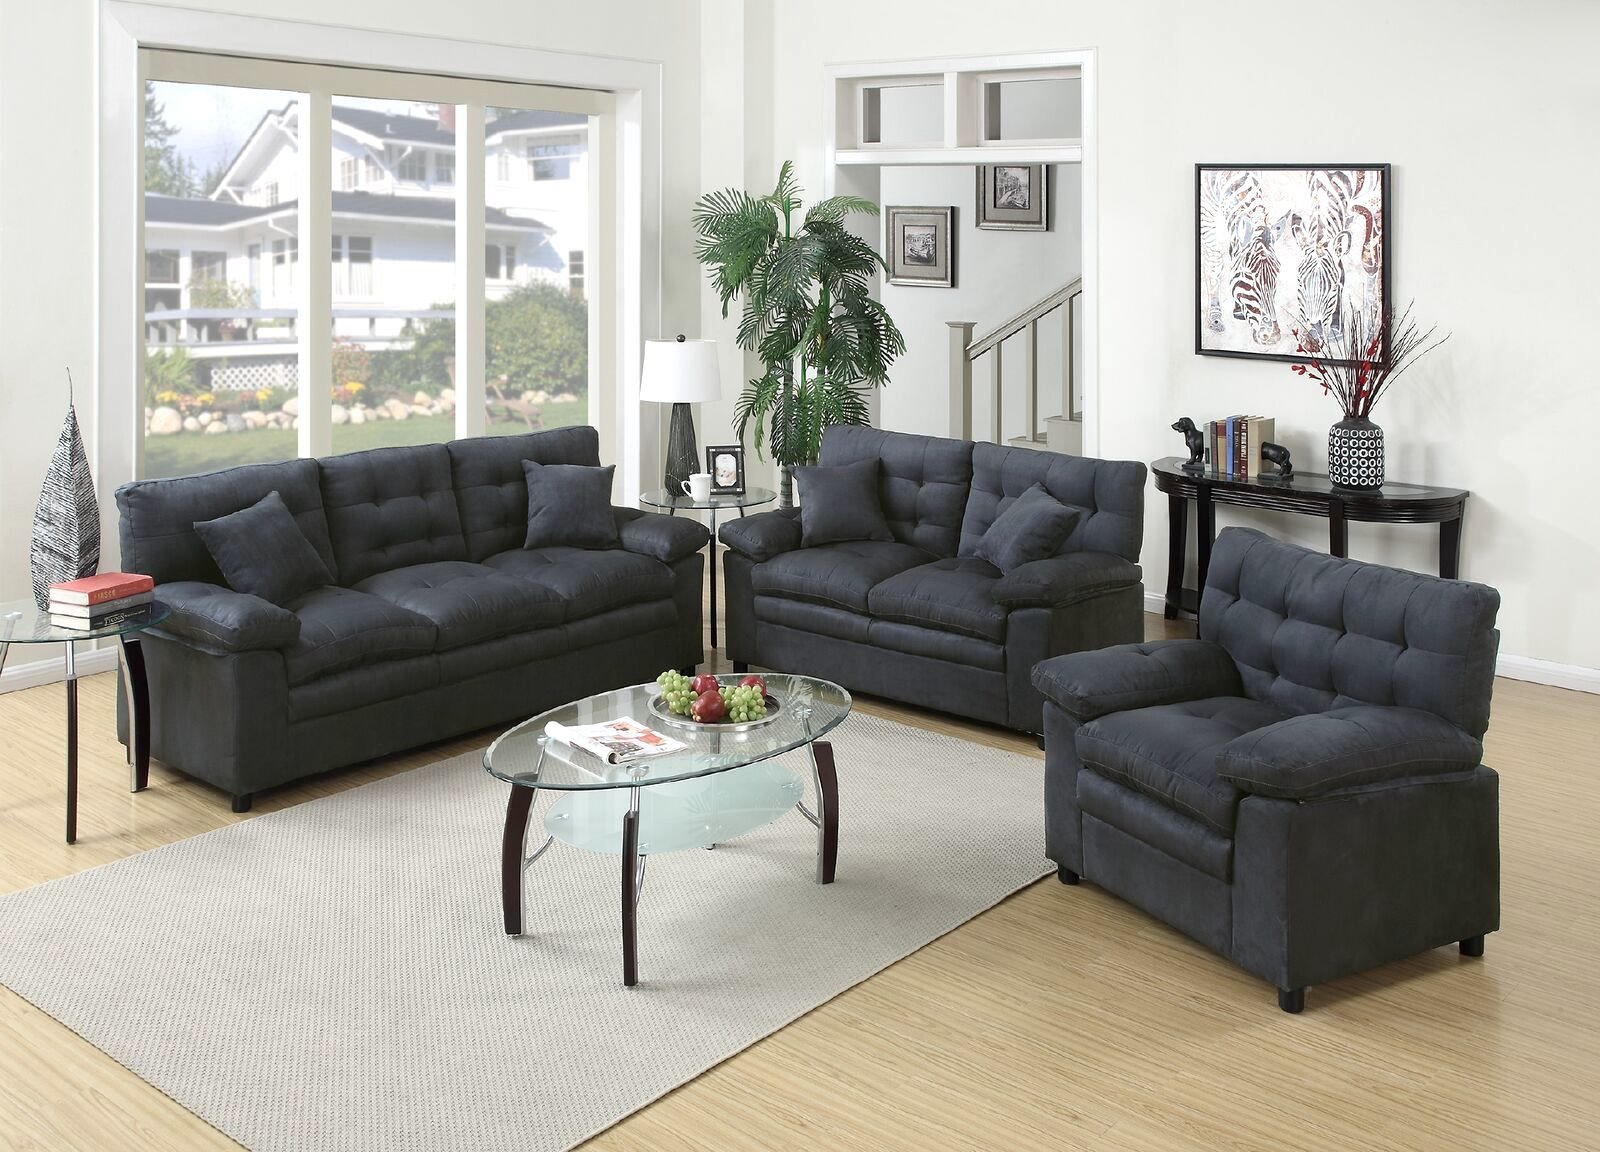 Take A Look At These Beautiful 3 Piece Living Room Sets Photos throughout 3 Piece Living Room Sets